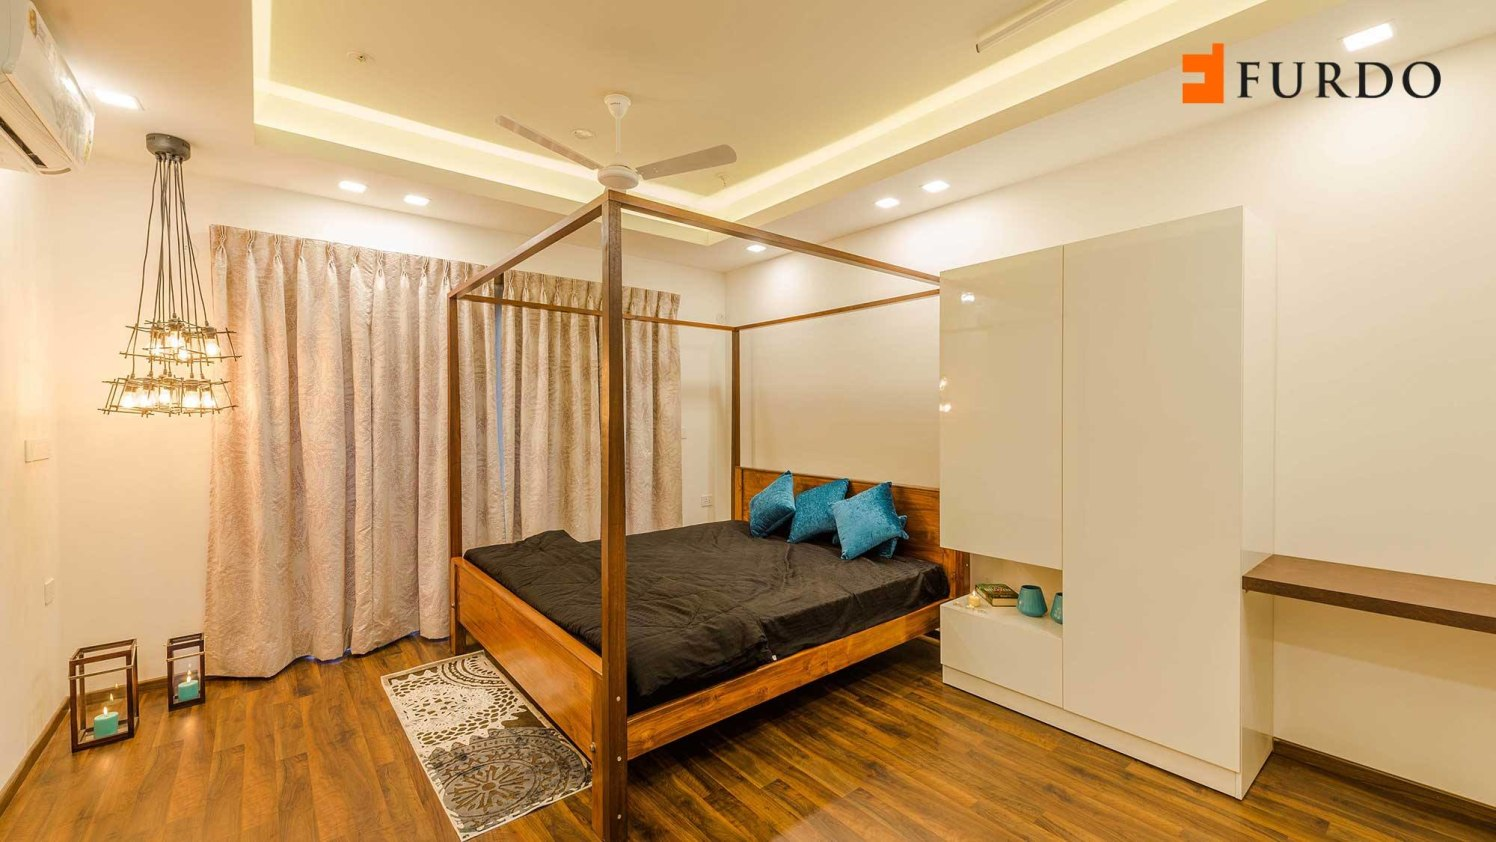 Bedroom With Wooden Flooring And Modern False Ceiling by Furdo.com Bedroom Modern | Interior Design Photos & Ideas